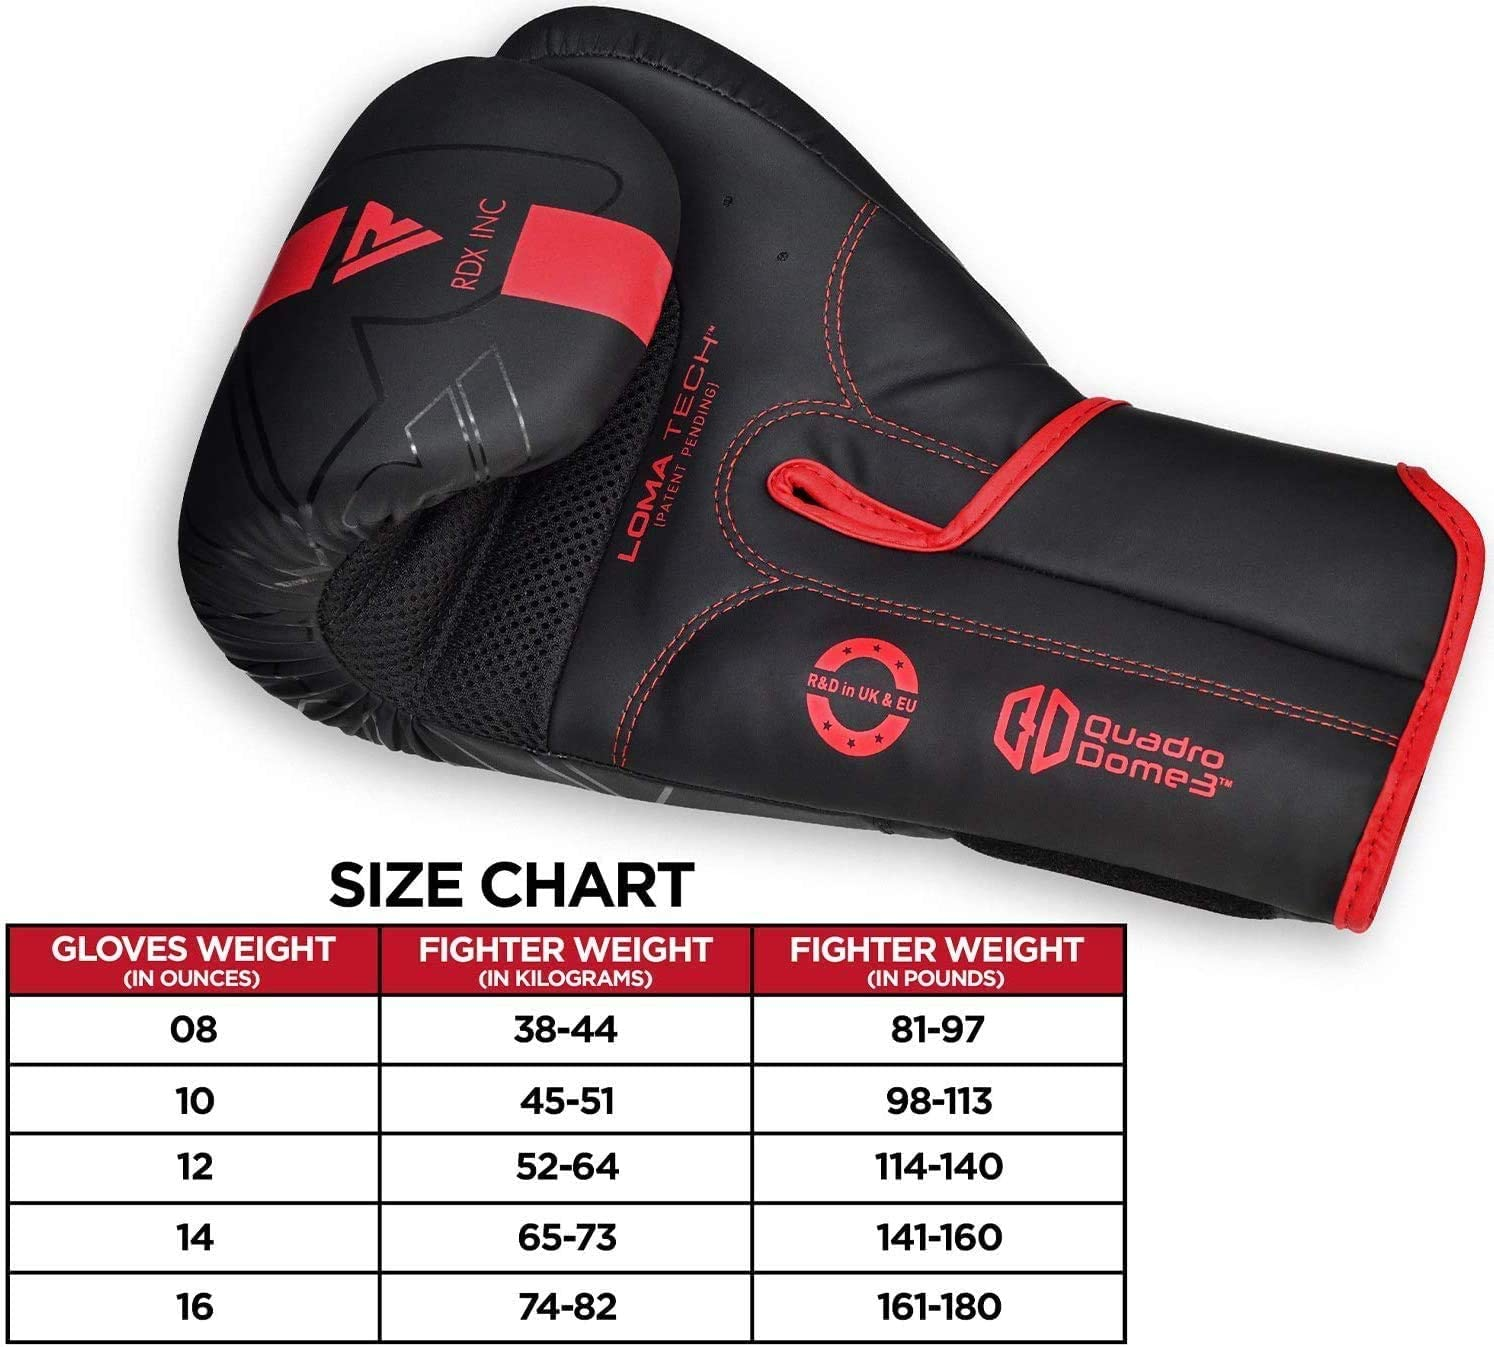 Thai Pad Punch Bag Focus Pads Double End Ball Punching Fight Gloves Kara Patent Pending Training Mitt for Kickboxing MMA RDX Boxing Gloves Sparring and Muay Thai Maya Hide Leather